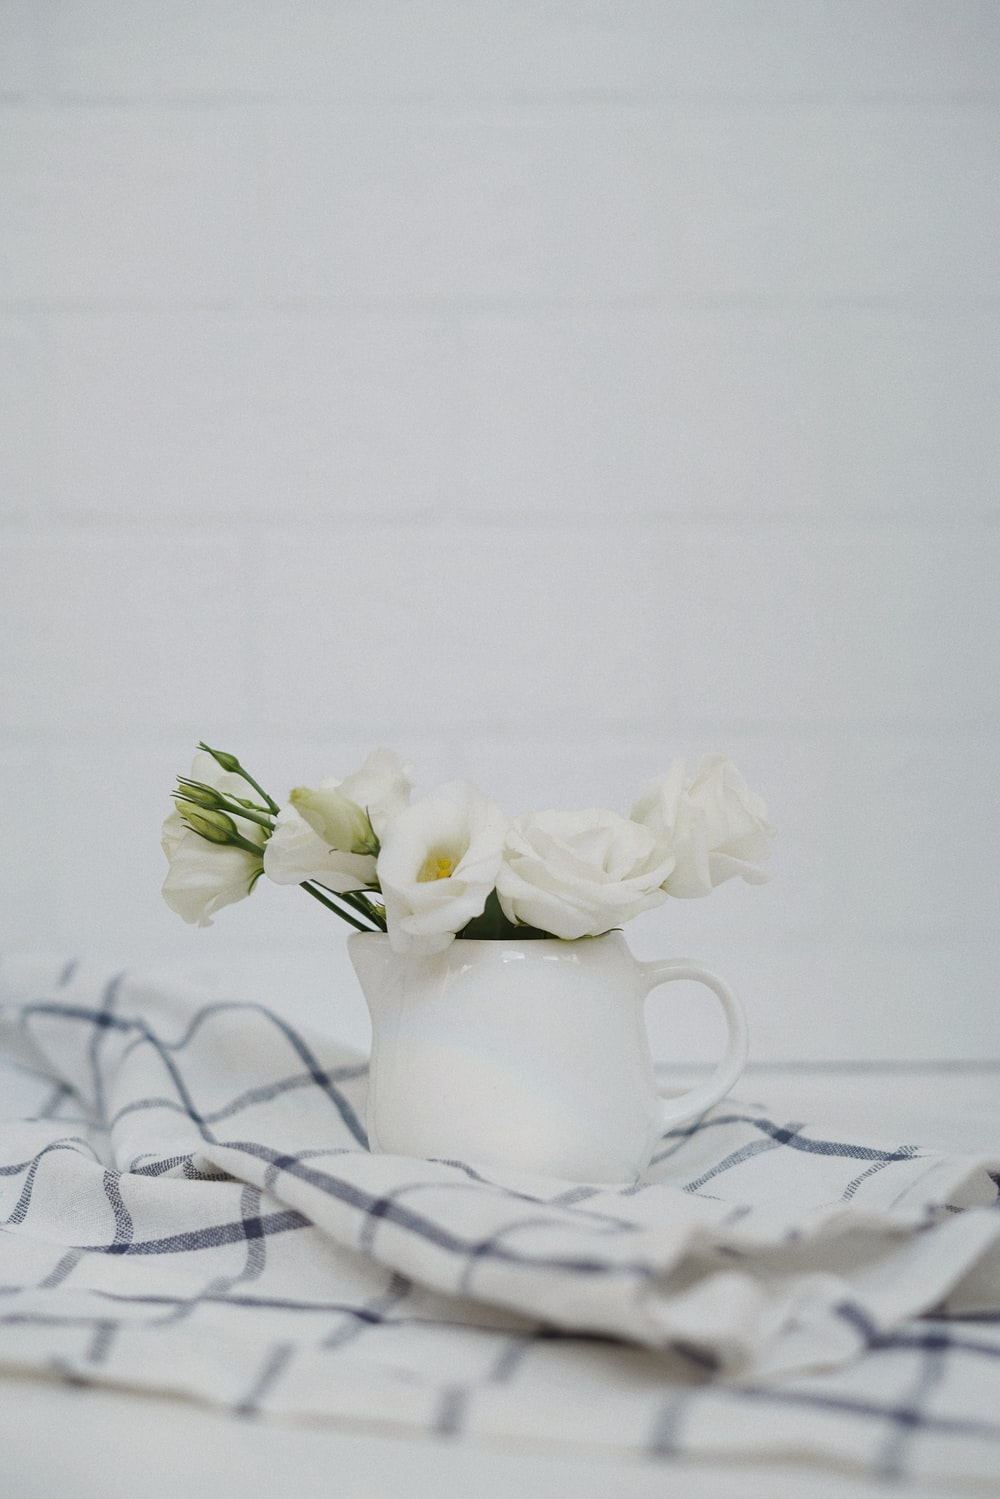 white flowers in white ceramic vase